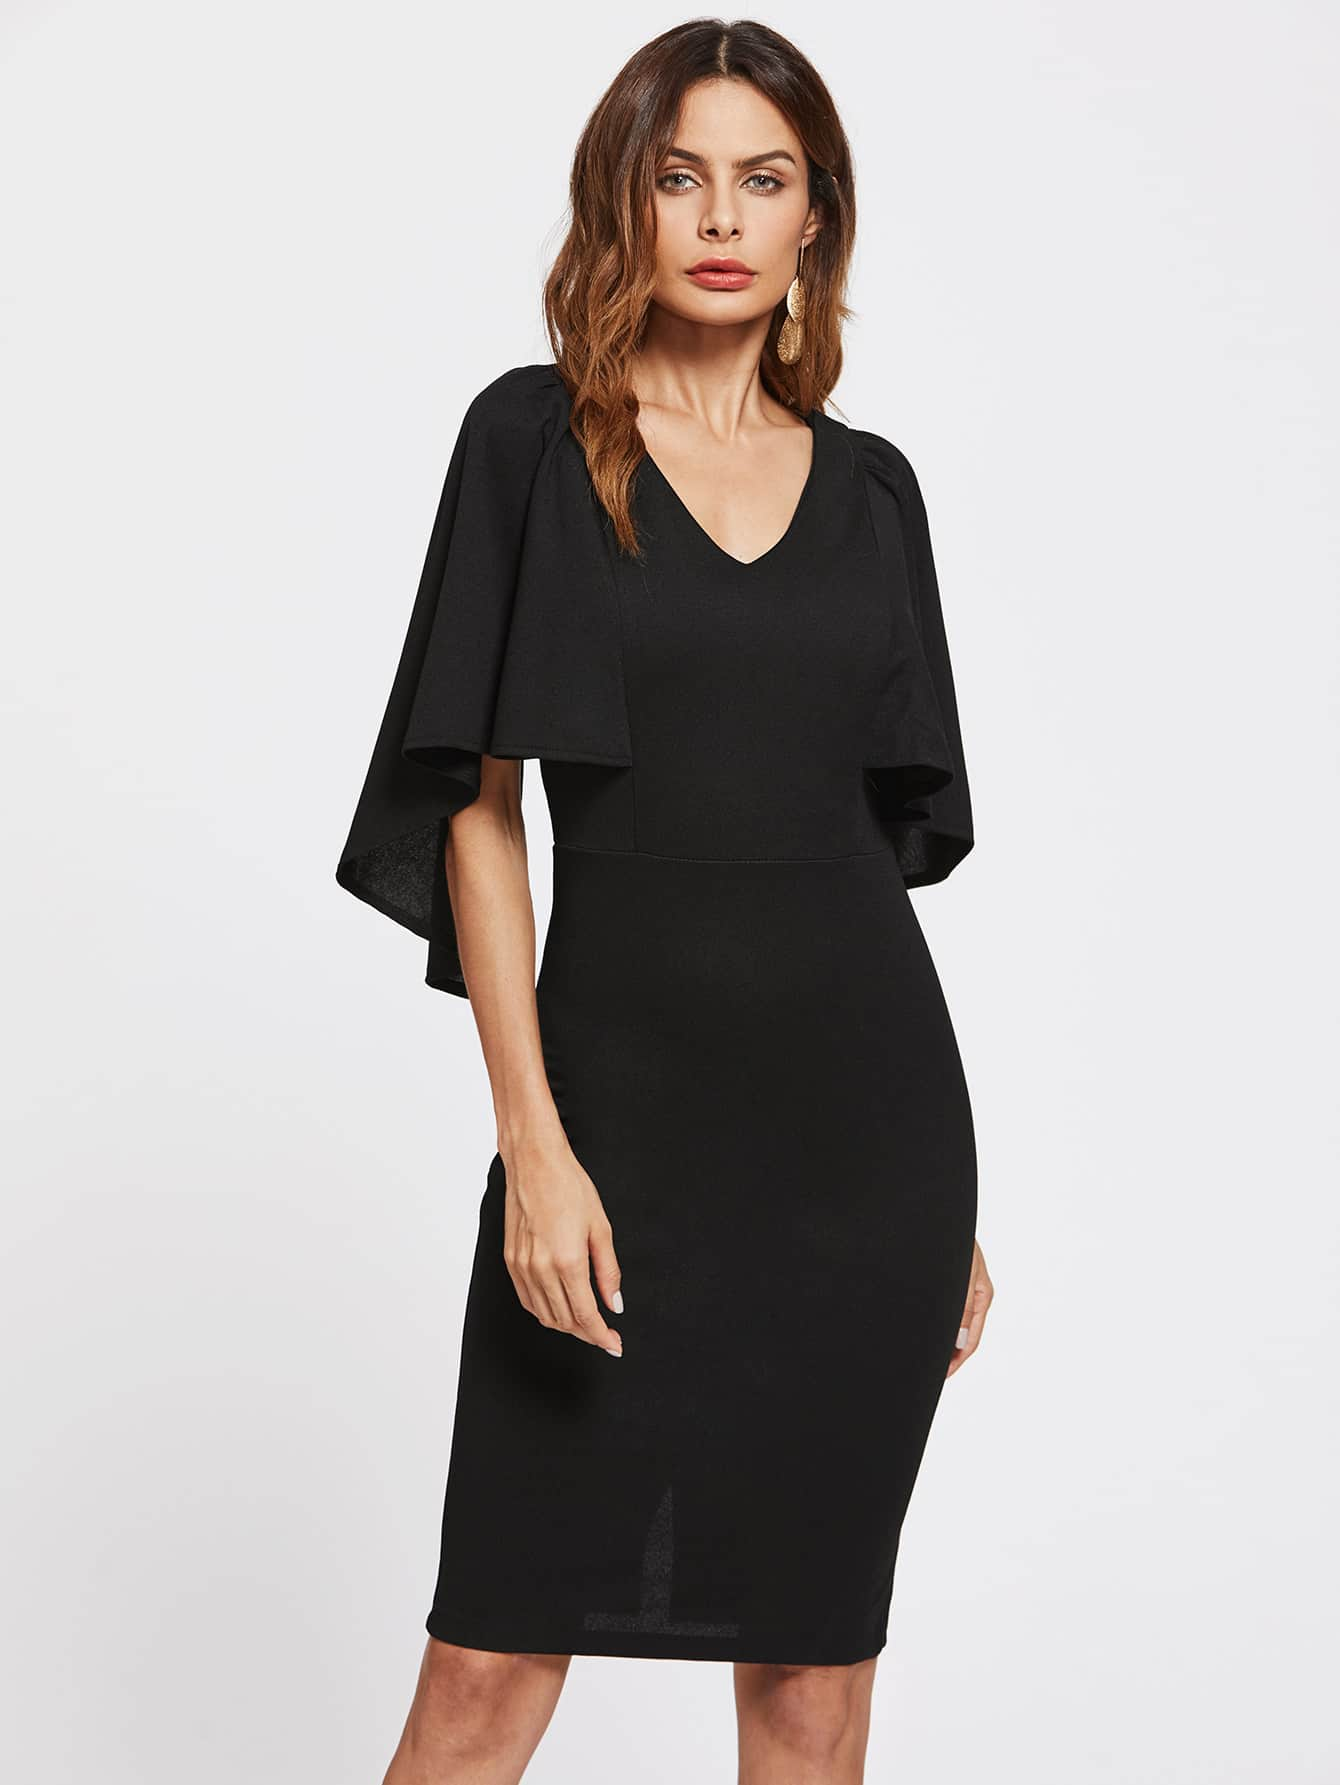 Form Fitting Cape Sleeve Dress dress170712452